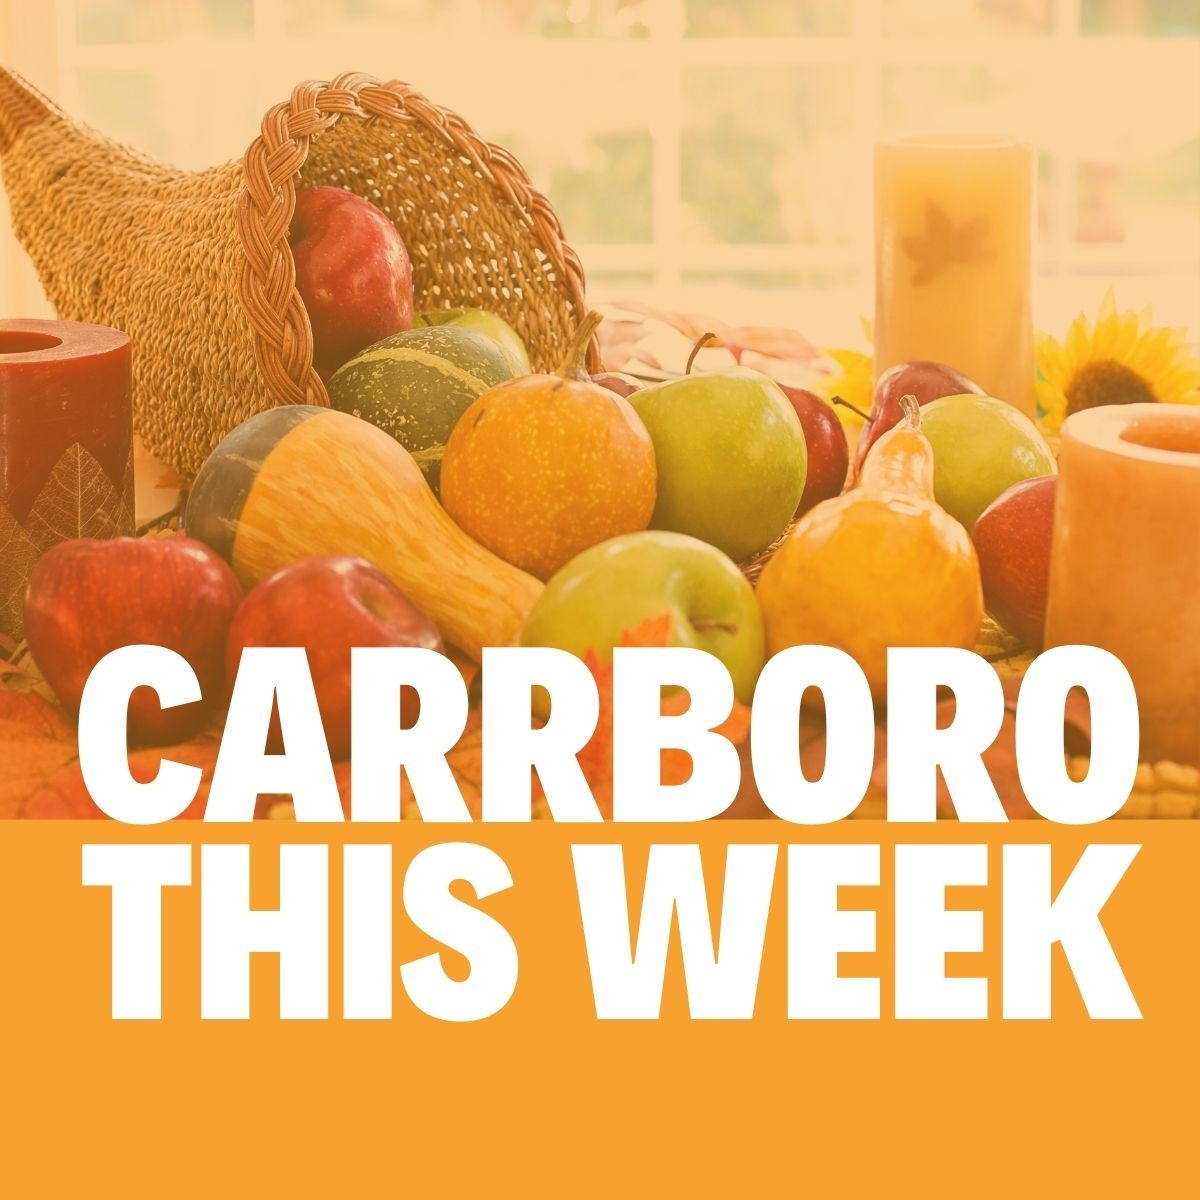 Carrboro This Week Nov 25 2020